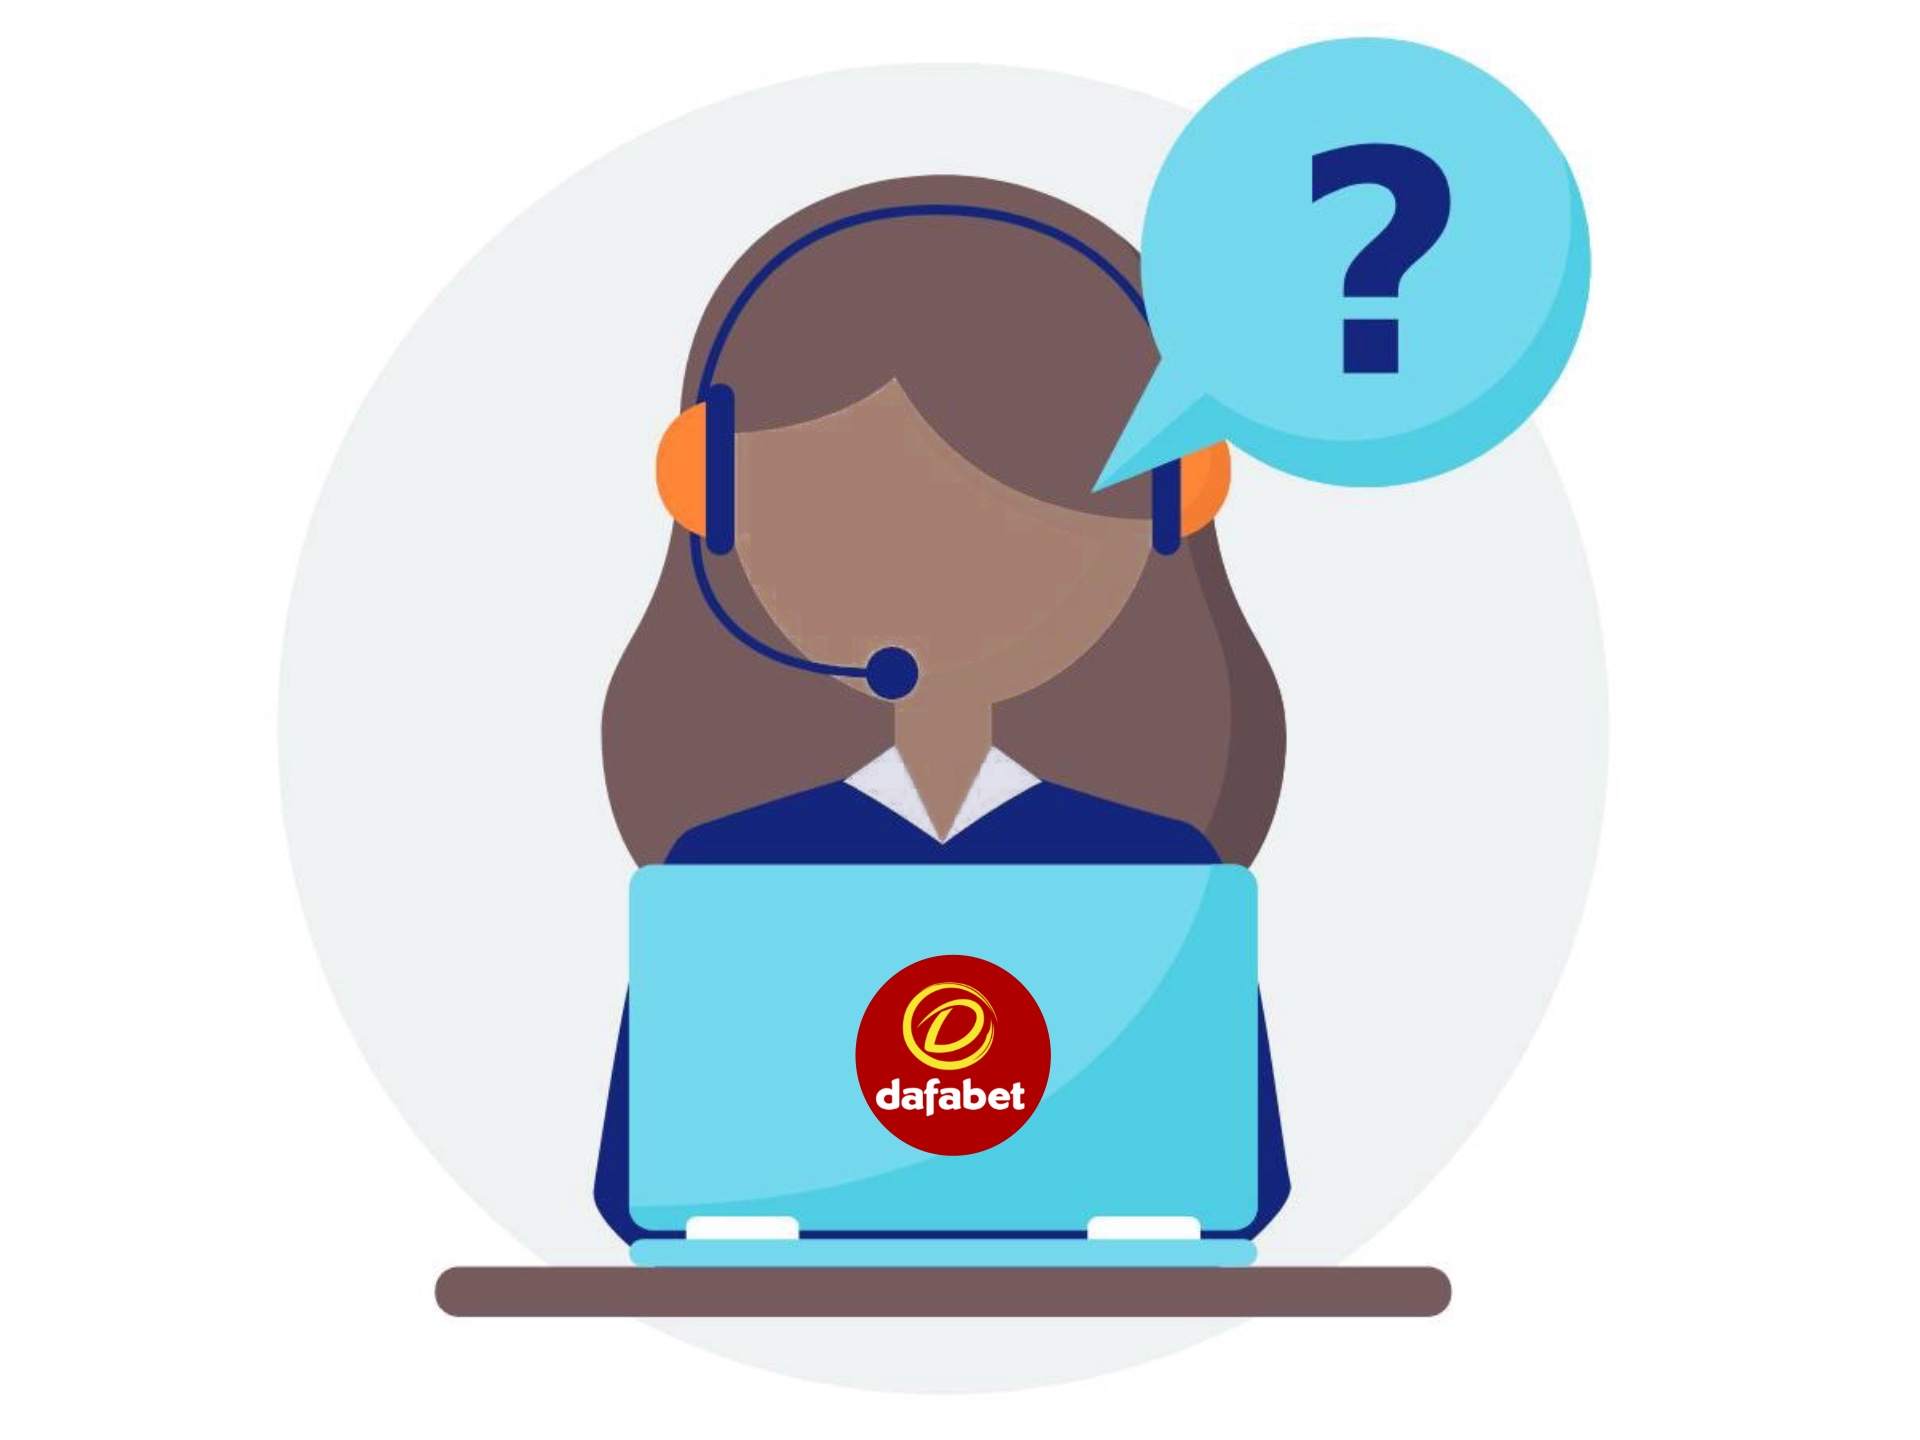 Be polite while contactong the support team and you problems will be solved quickly.